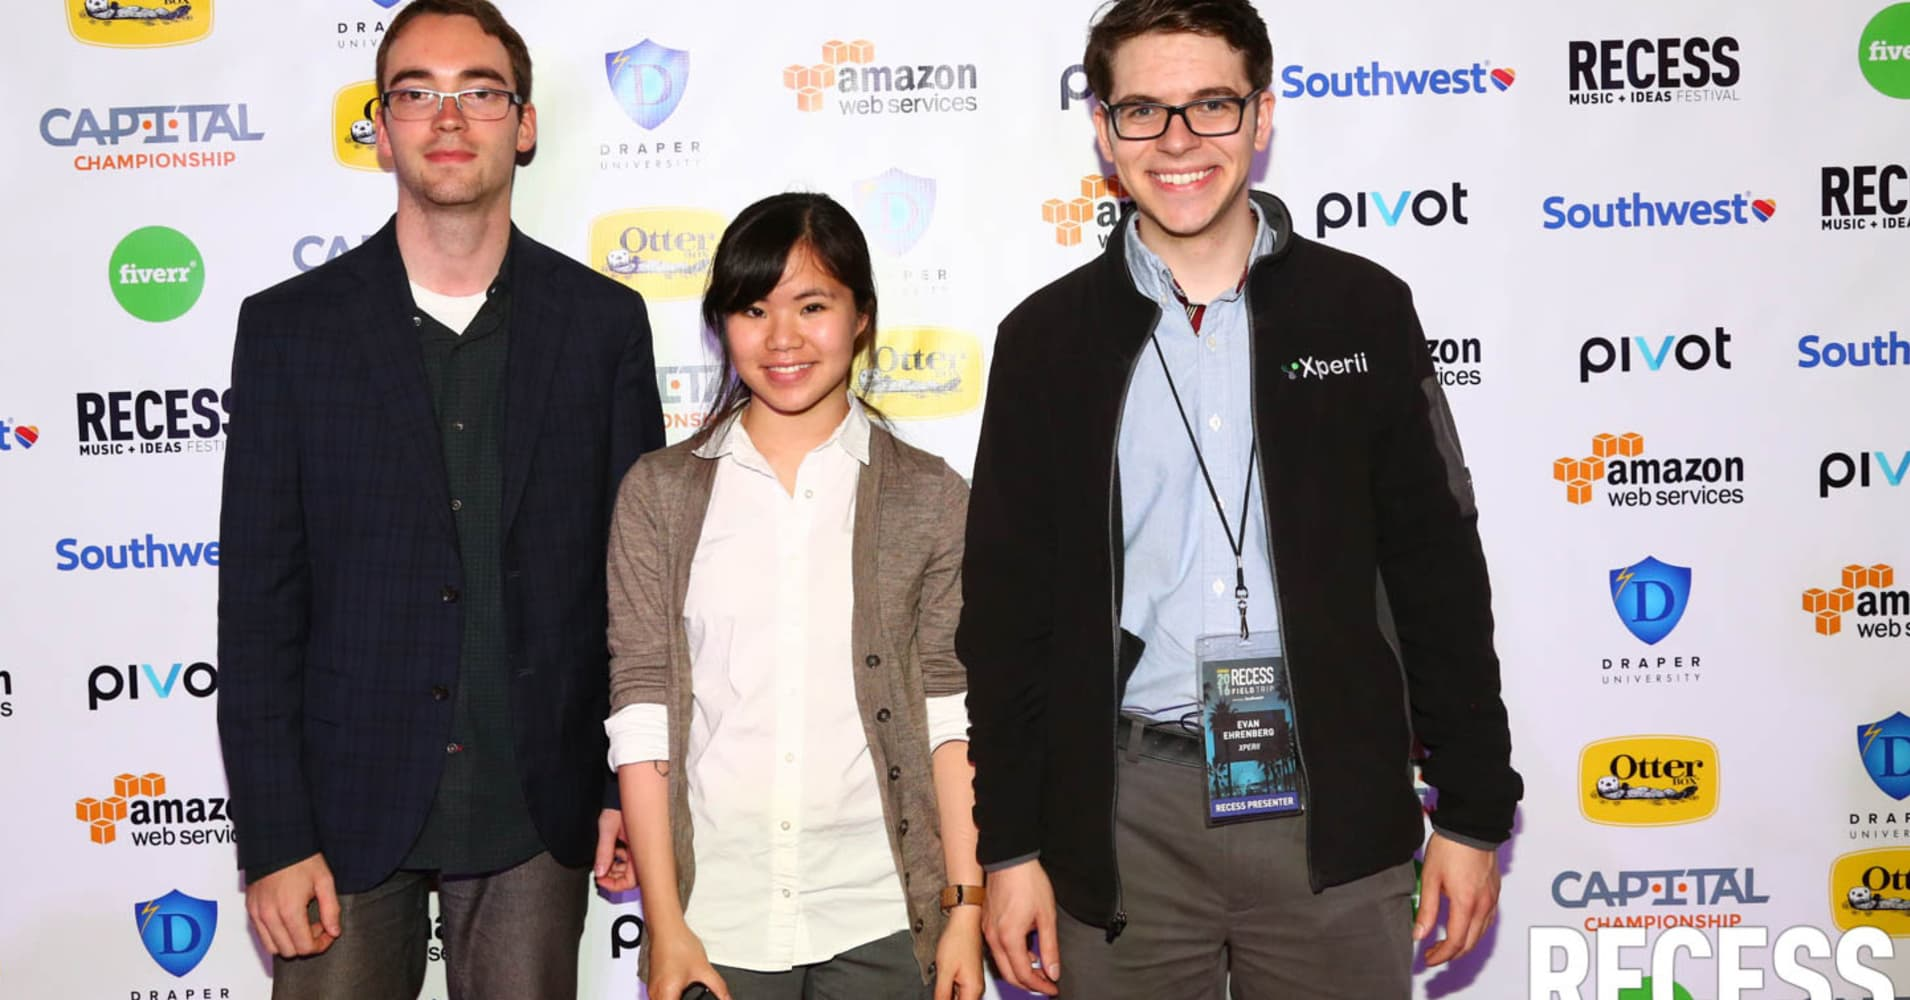 Xperii, winners of the Recess pitch finals in Los Angeles. From left to right Daniel Williams, Head of Business Development, Cynthia Chen, Co-founder & CTO and Evan Ehrenberg, Co-founder & CEO.